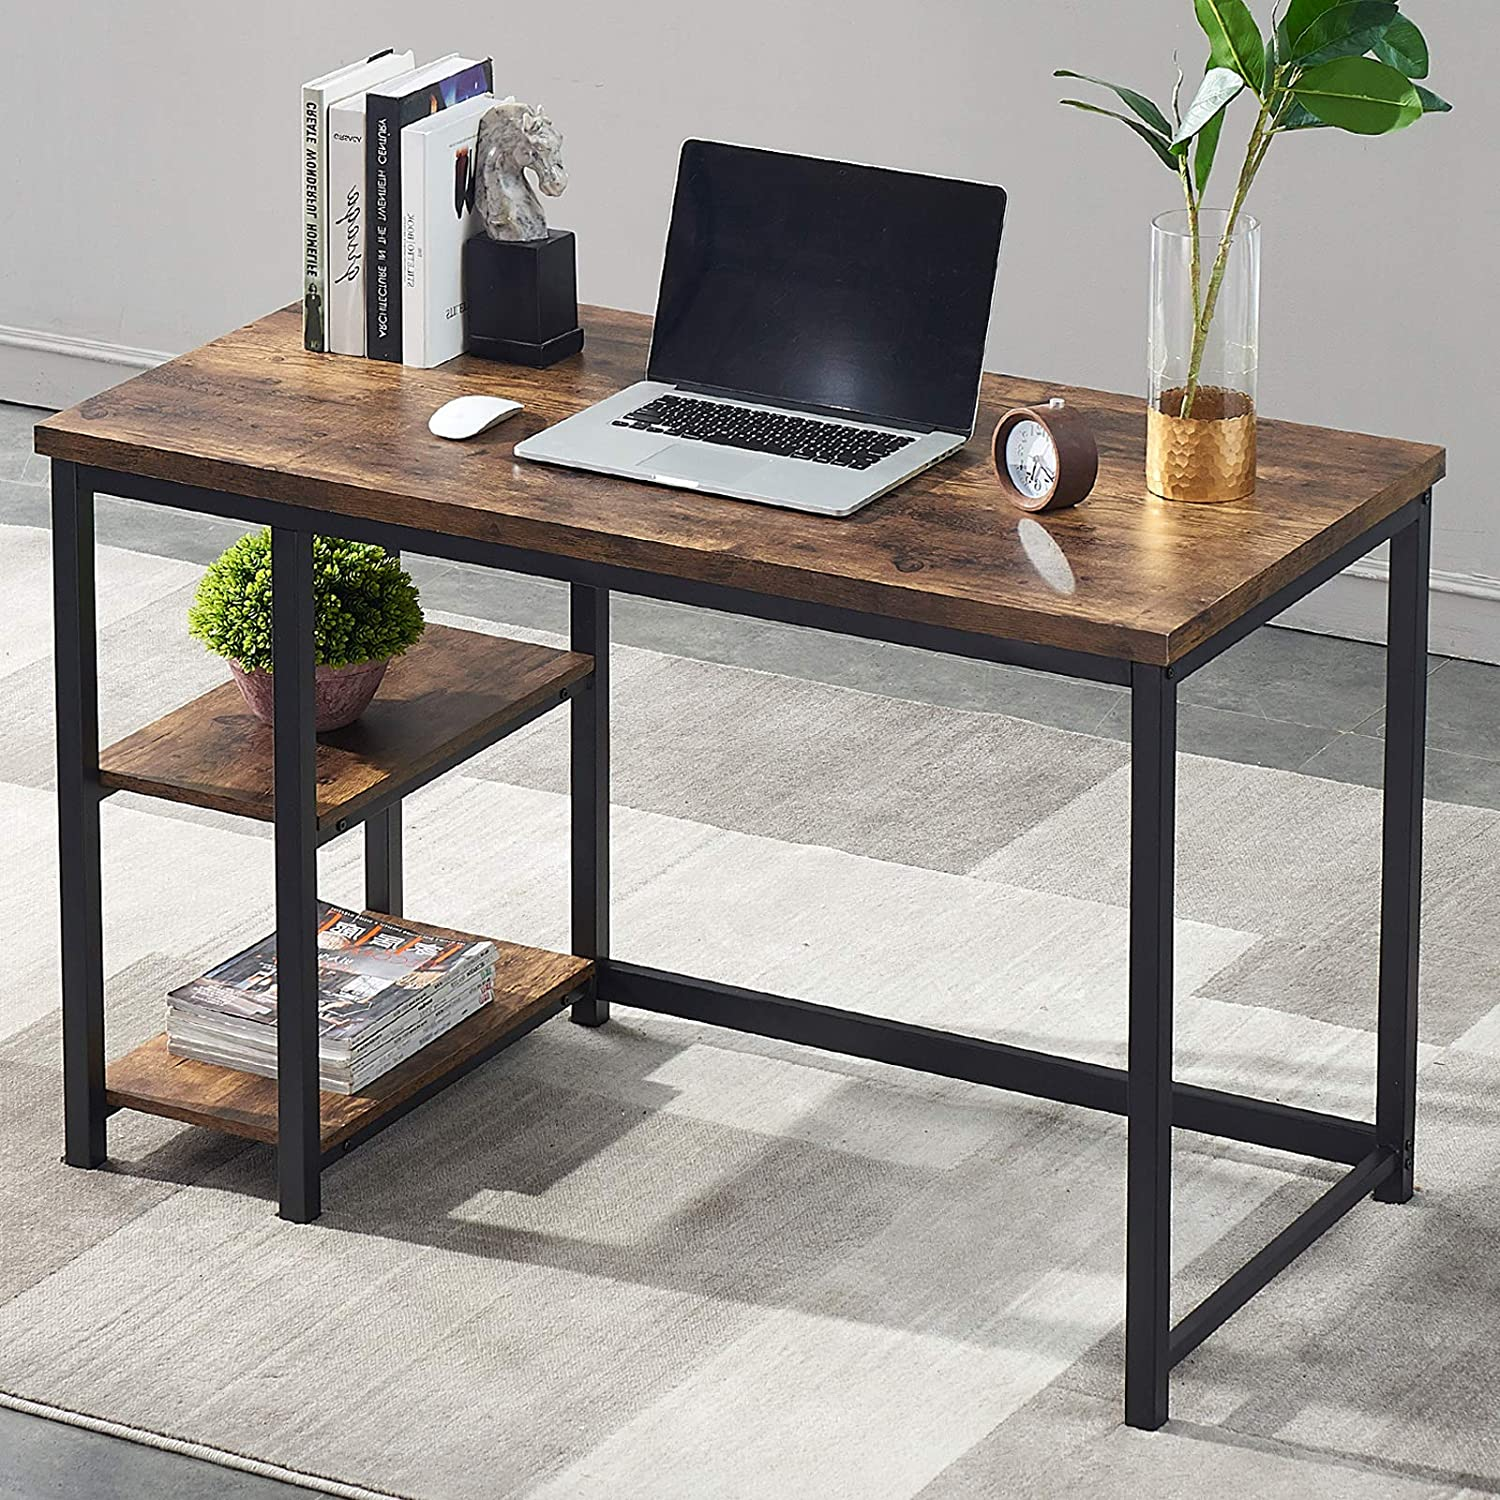 Sales for sale UnaFurni Office Computer Desk with Study Japan's largest assortment Shelves Inch Writin 55